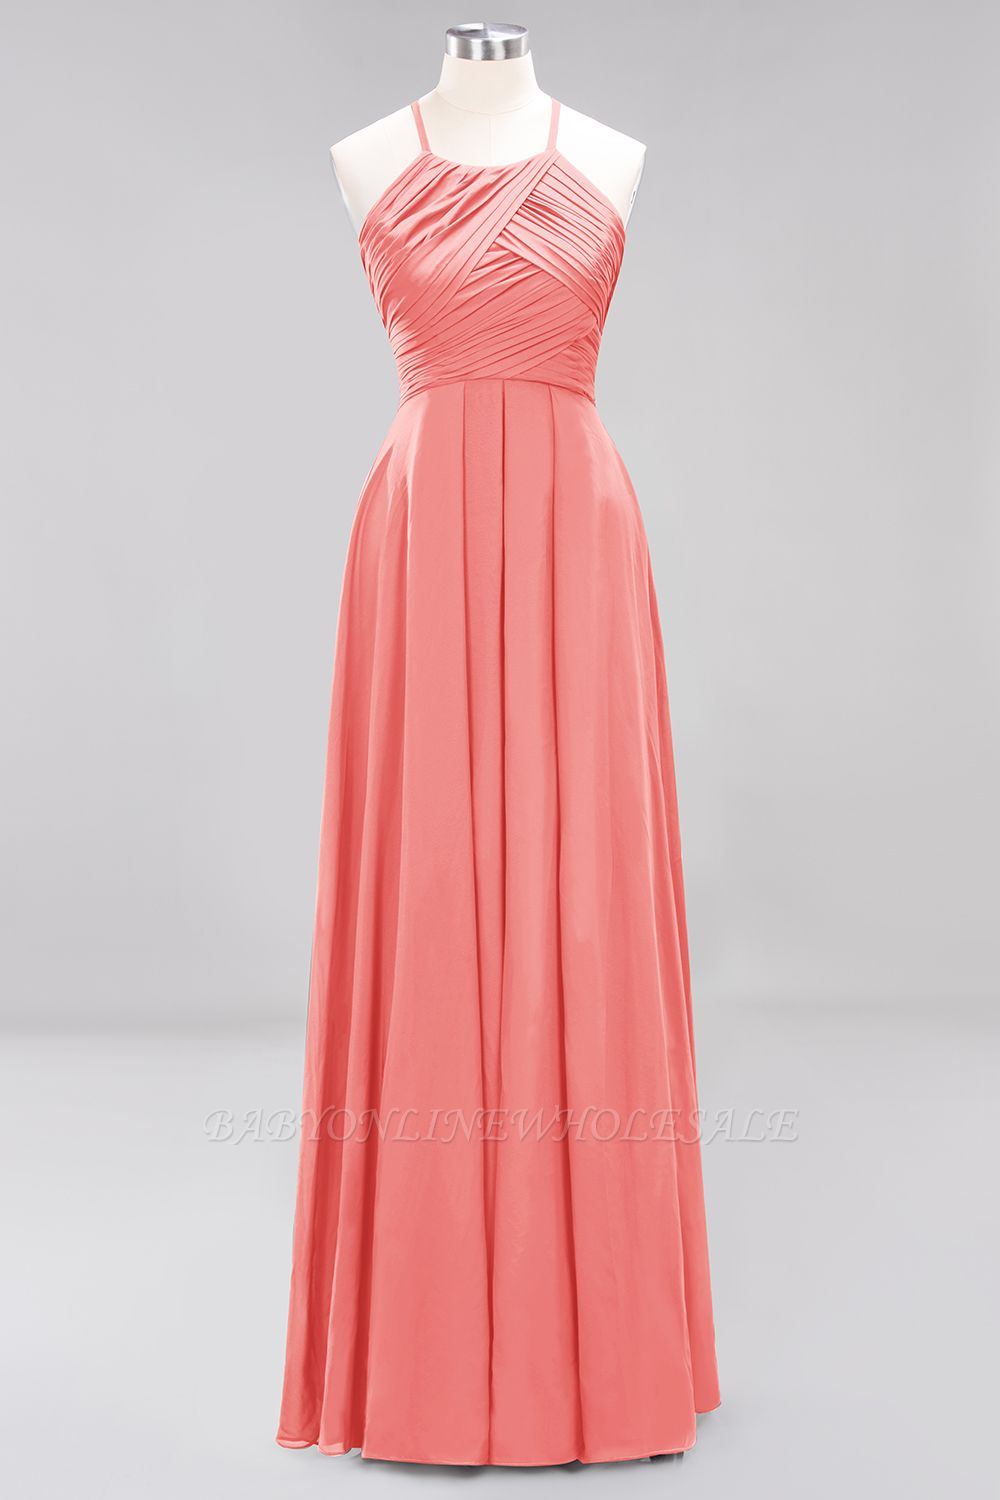 A-Line Chiffon Halter Ruffles Floor-Length Bridesmaid Dress